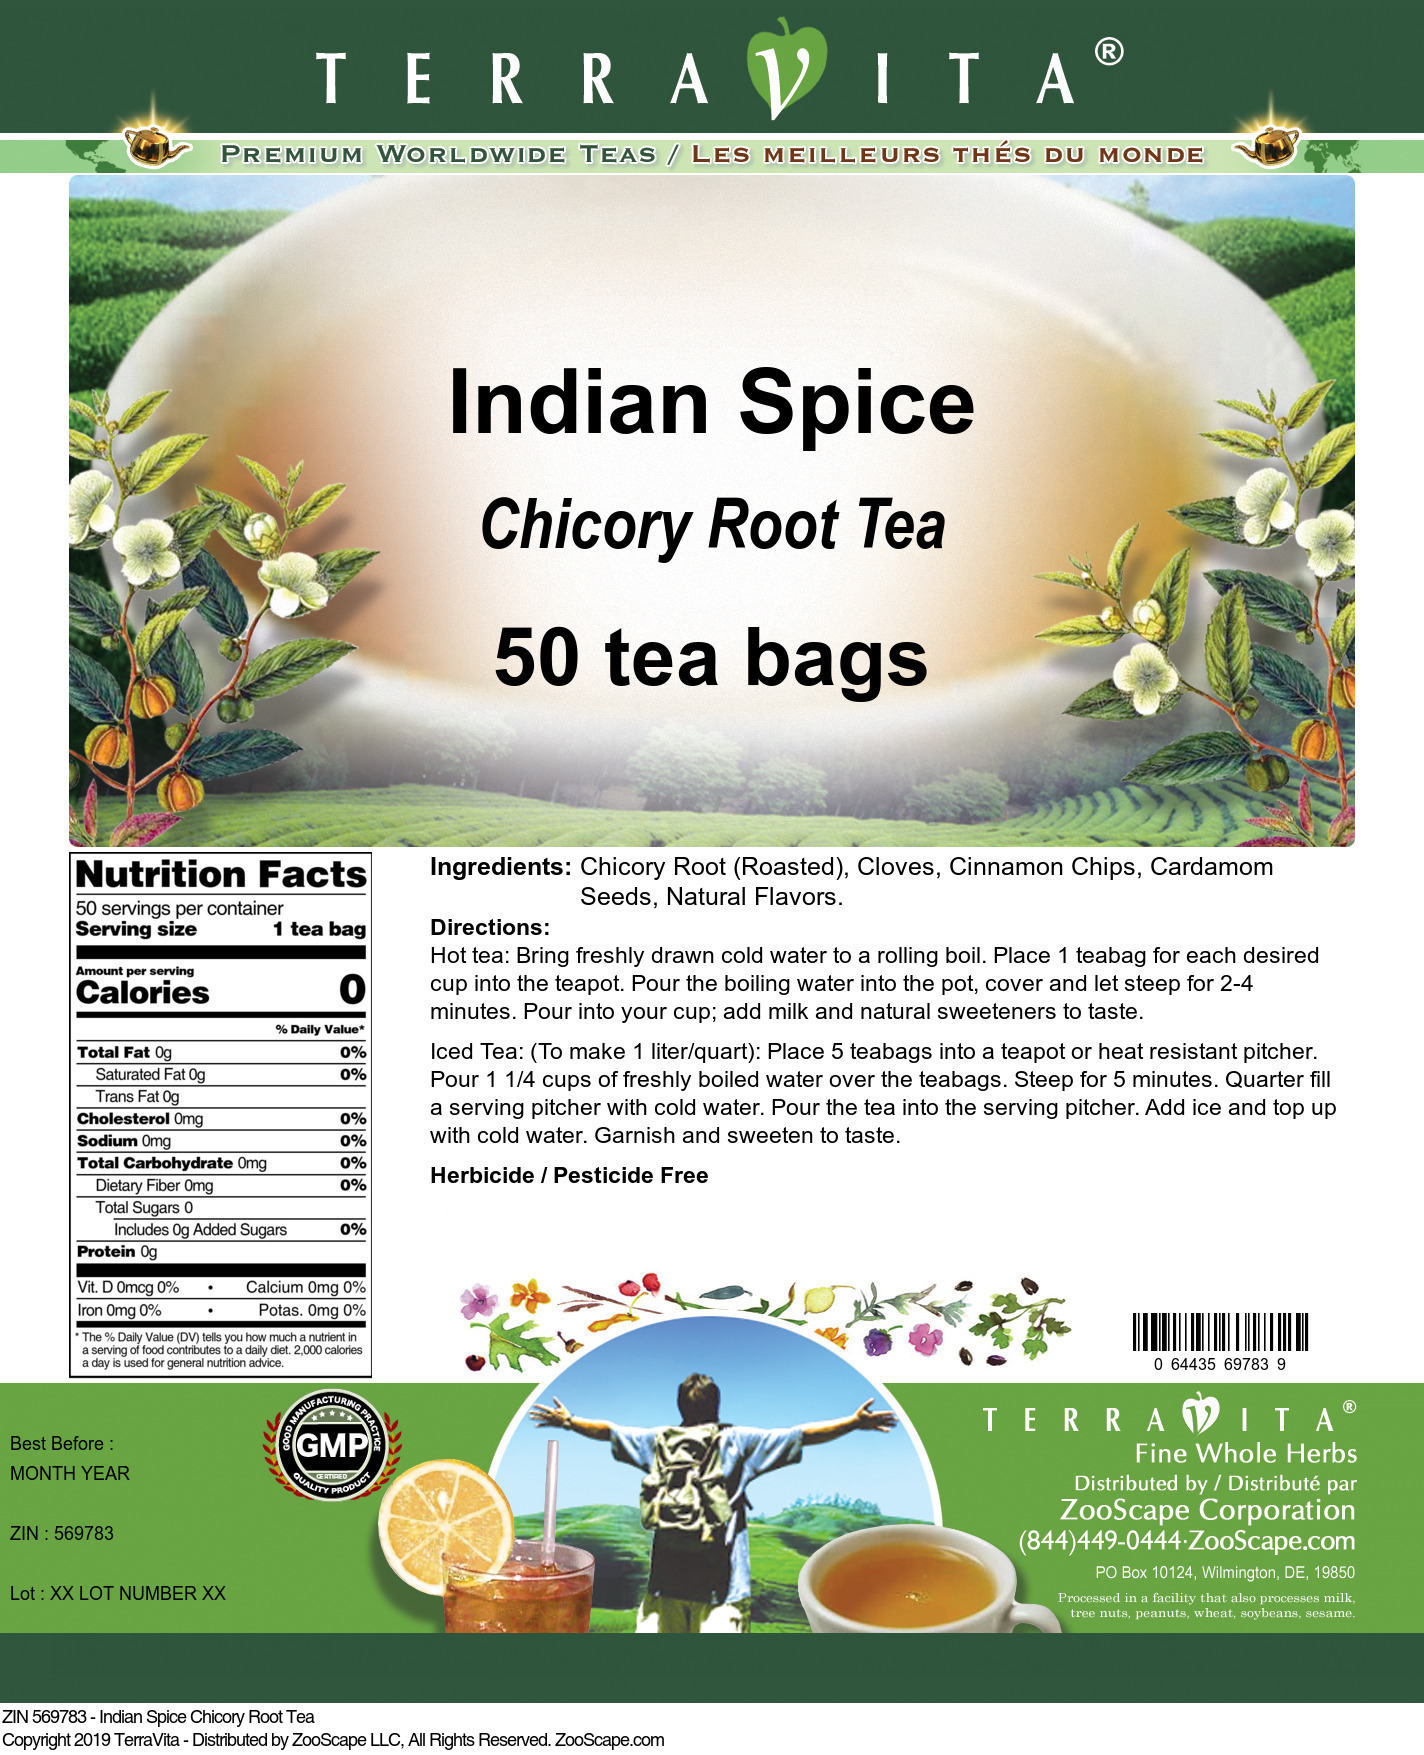 Indian Spice Chicory Root Tea